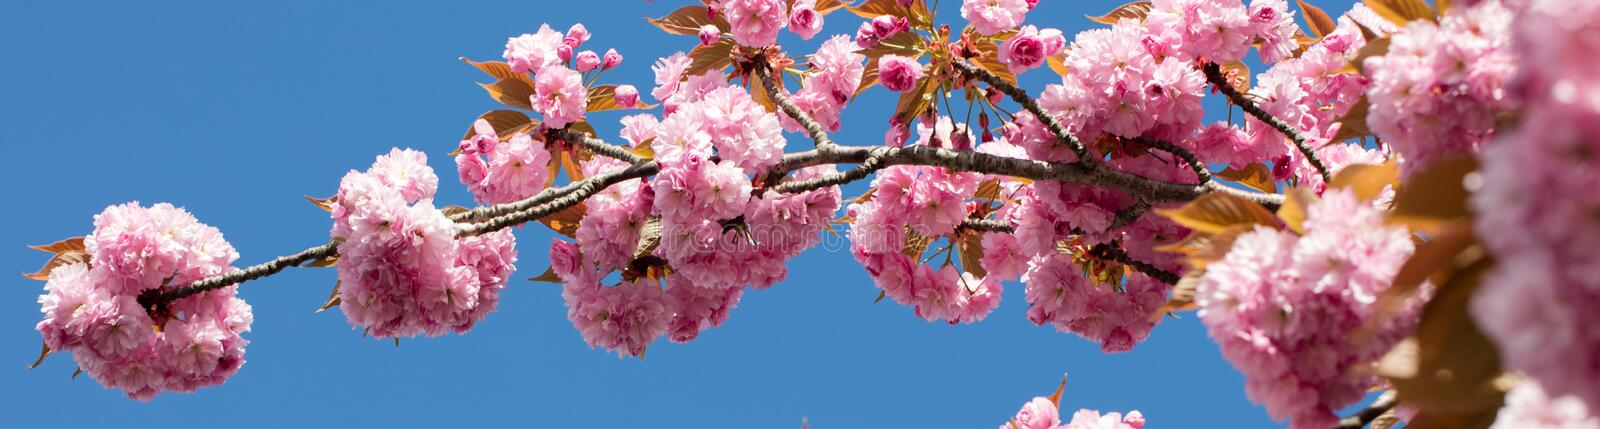 Long banner with pink Japanese cherry branch over blue sky royalty free stock image